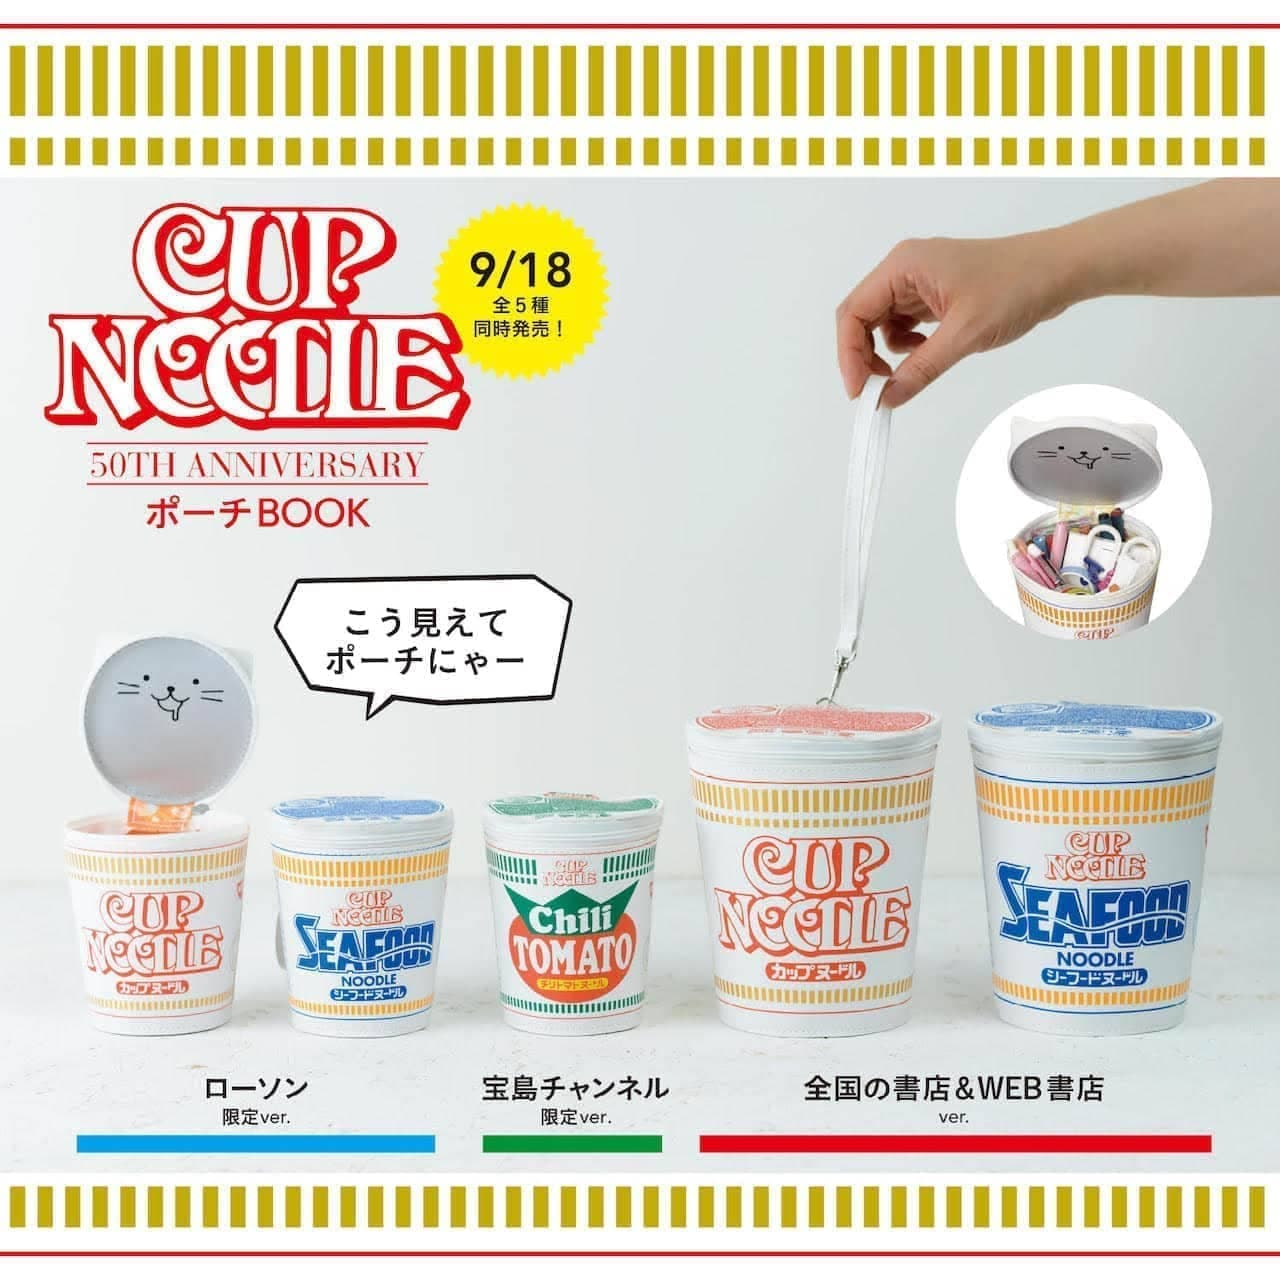 「CUP NOODLE 50TH ANNIVERSARY BOOK」宝島社から